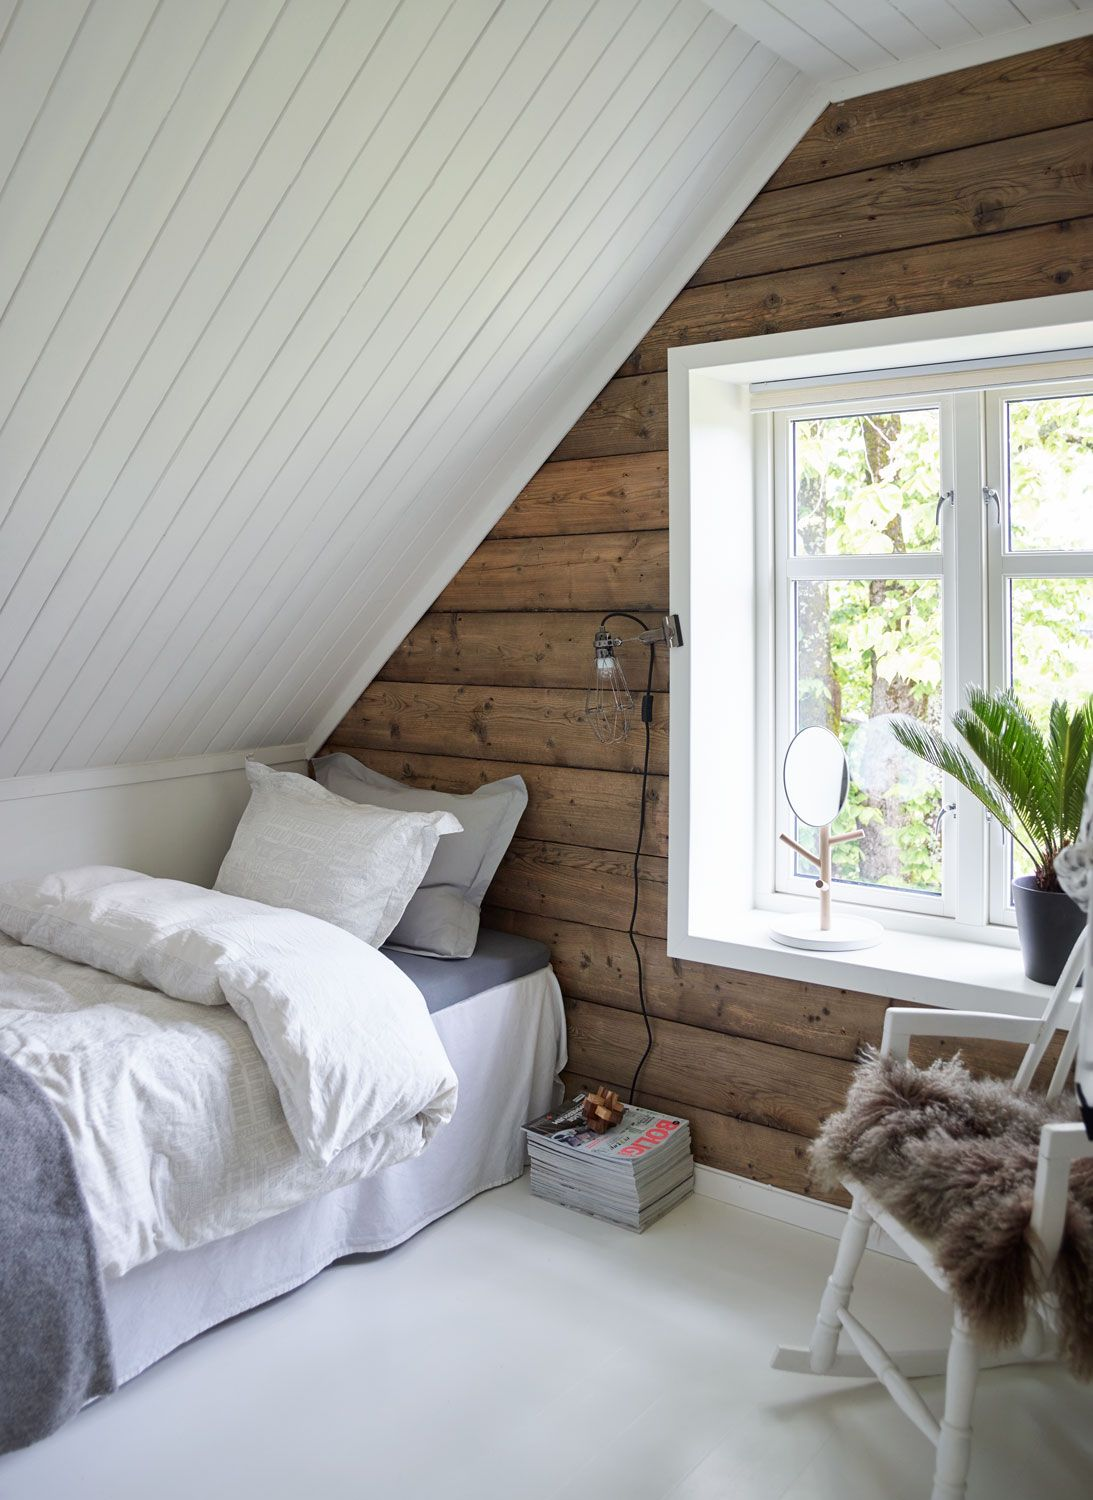 Awesome Attic Room Ideas Part - 9: Small Attic Bedroom-twin Bed And Rocking Chair. Window/street Facing Wall Is